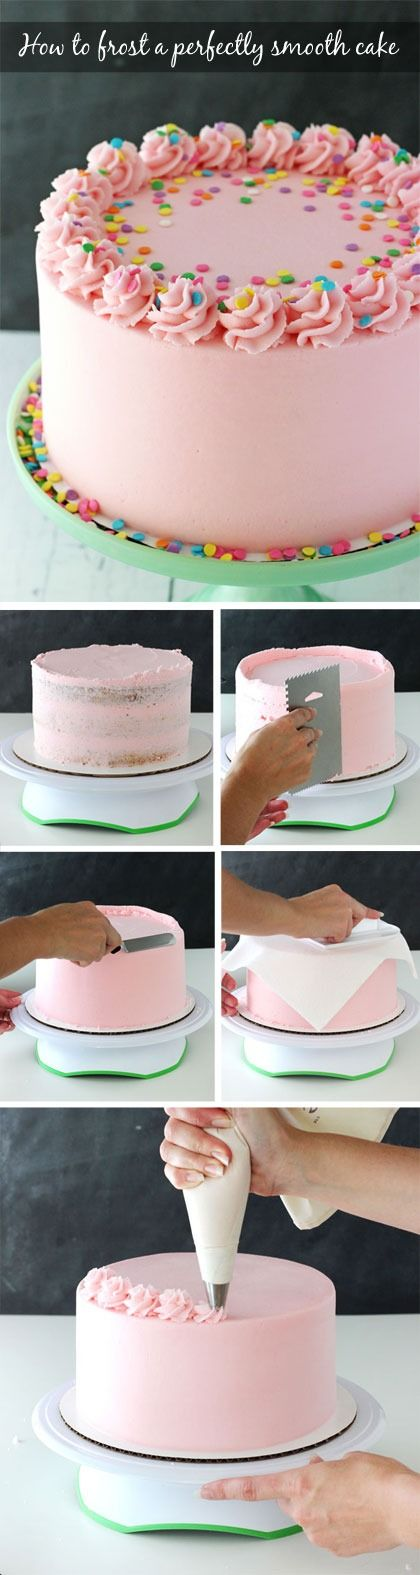 Tutorial - How to frost a perfectly smooth cake with buttercream icing!